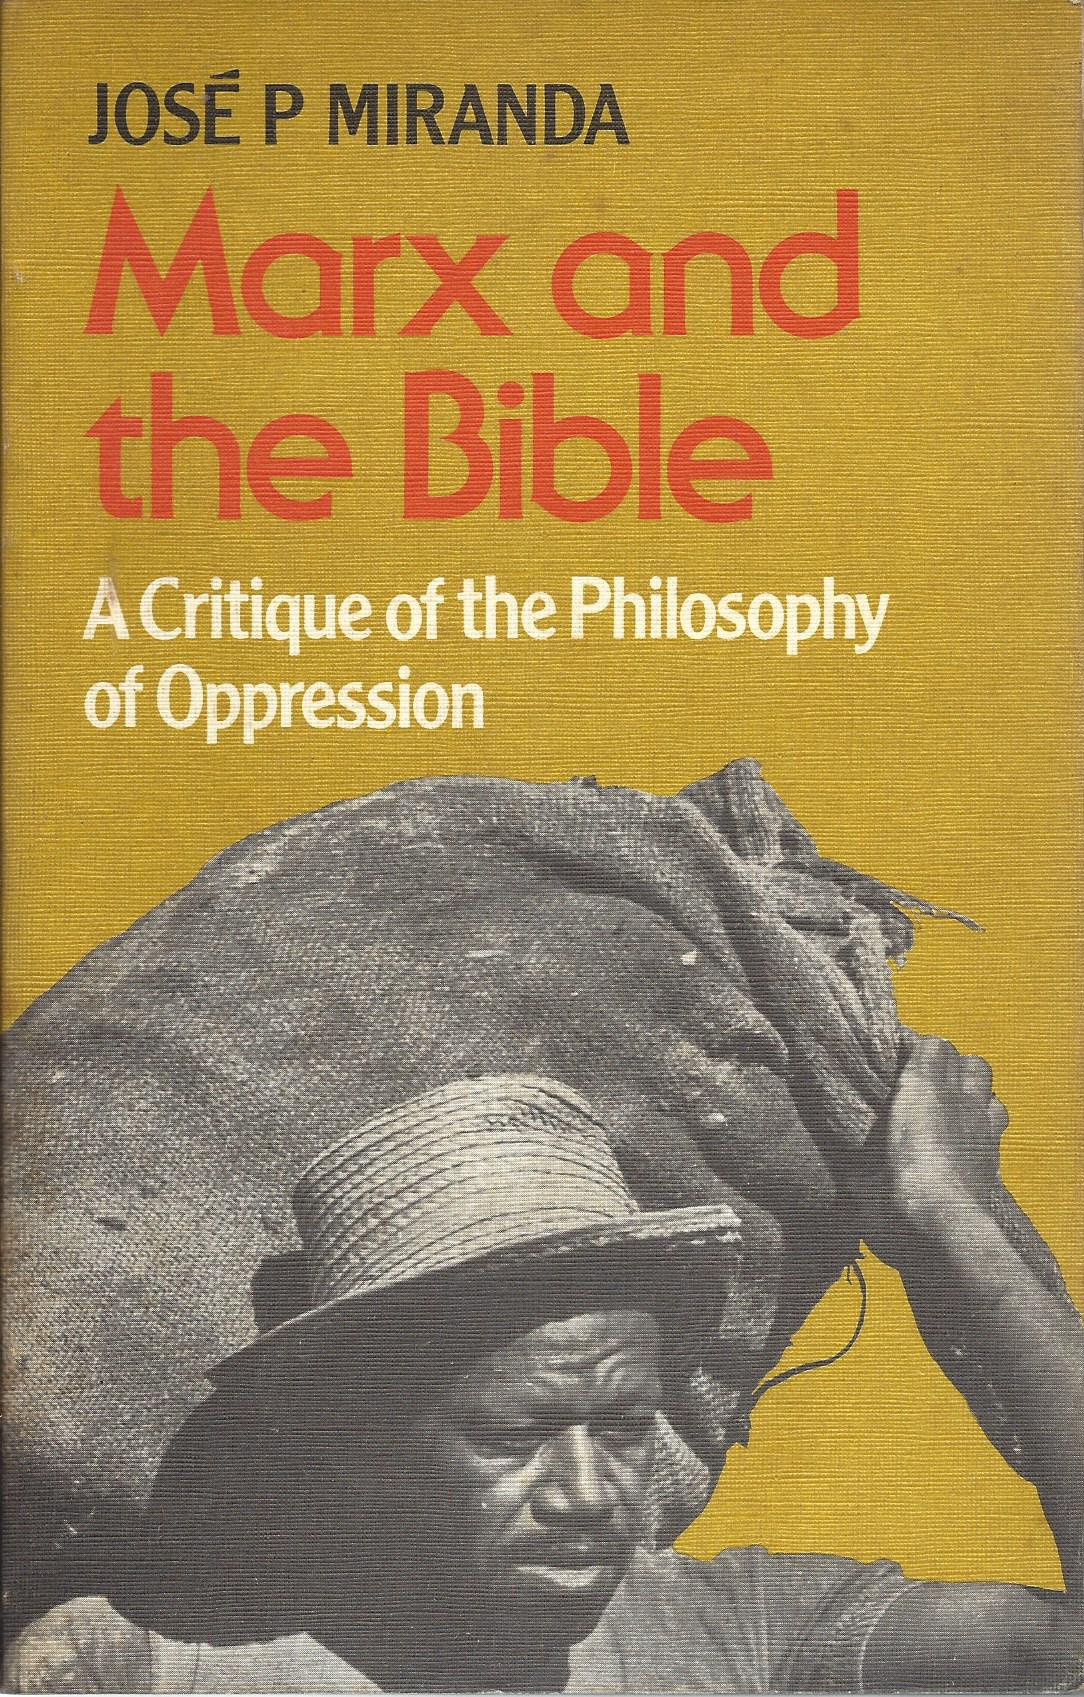 marx-and-the-bible-1977-published-by-scm